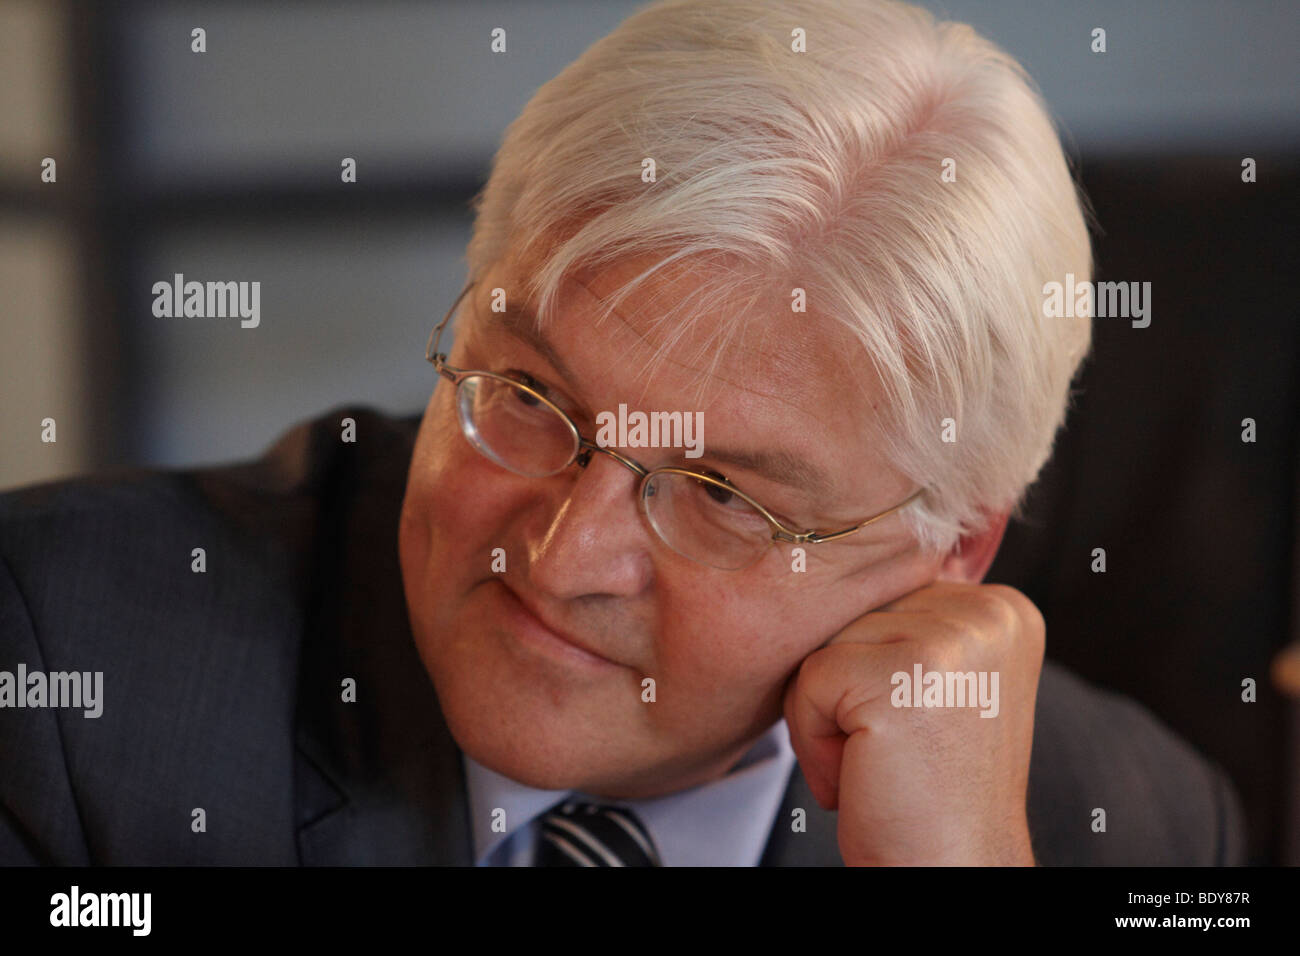 German Foreign Minister, Vice-Chancellor and SPD Chancellor Candidate Frank-Walter Steinmeier visiting Hooksiel - Stock Image